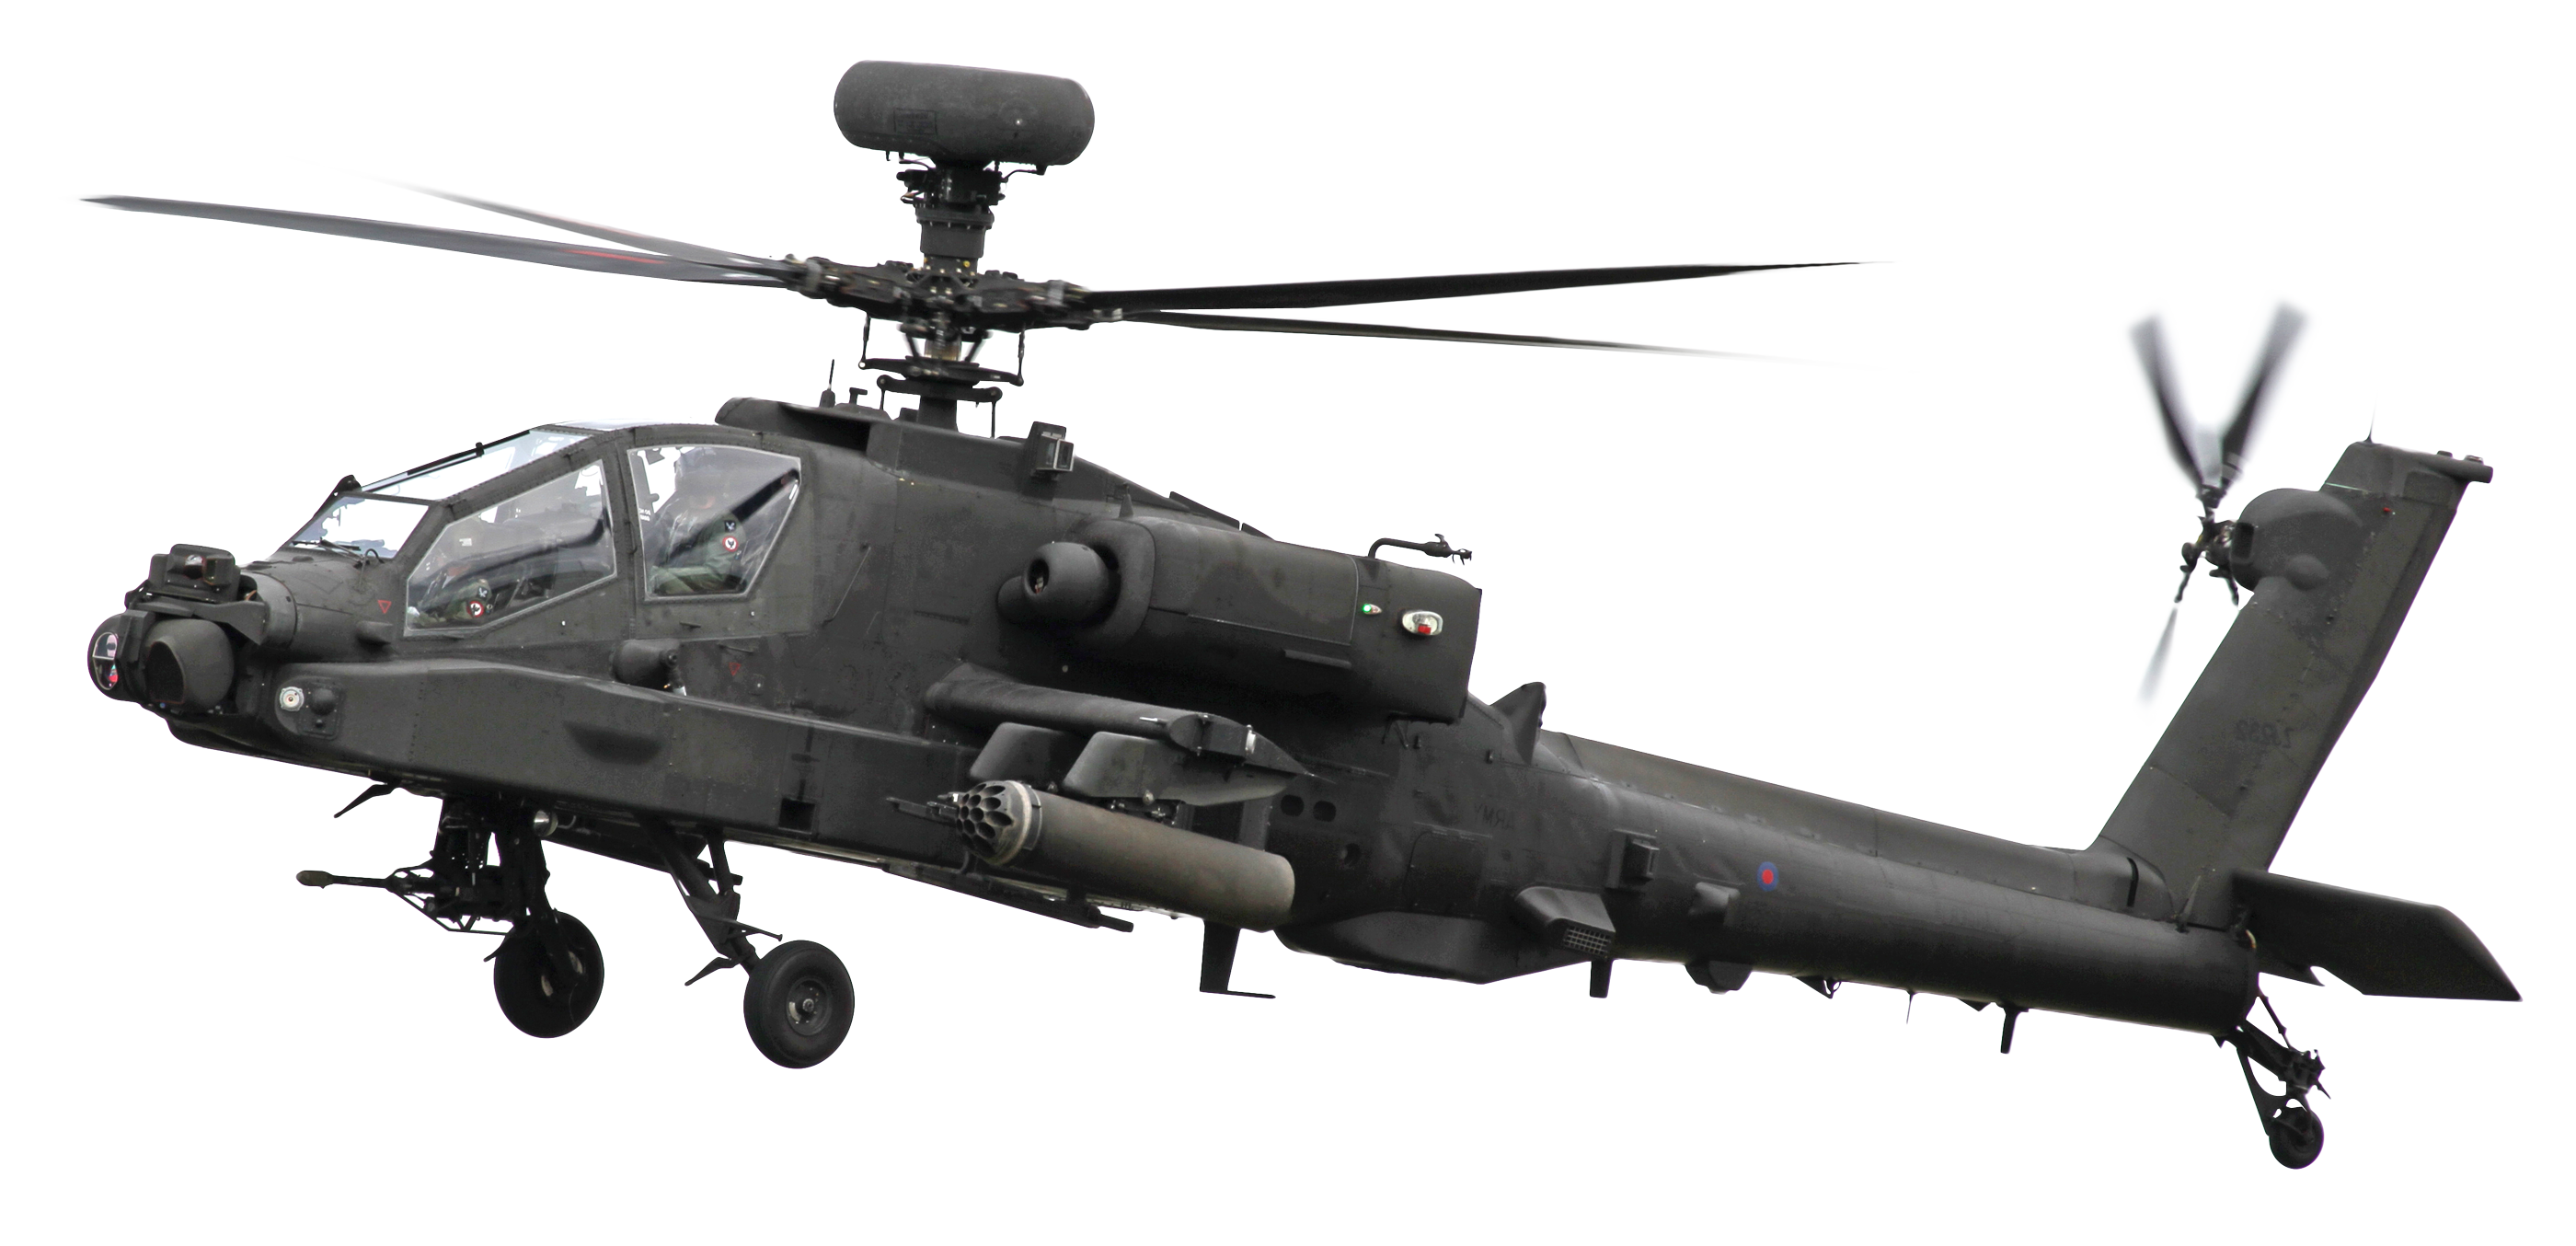 Army Helicopter PNG Transparent Free Images.